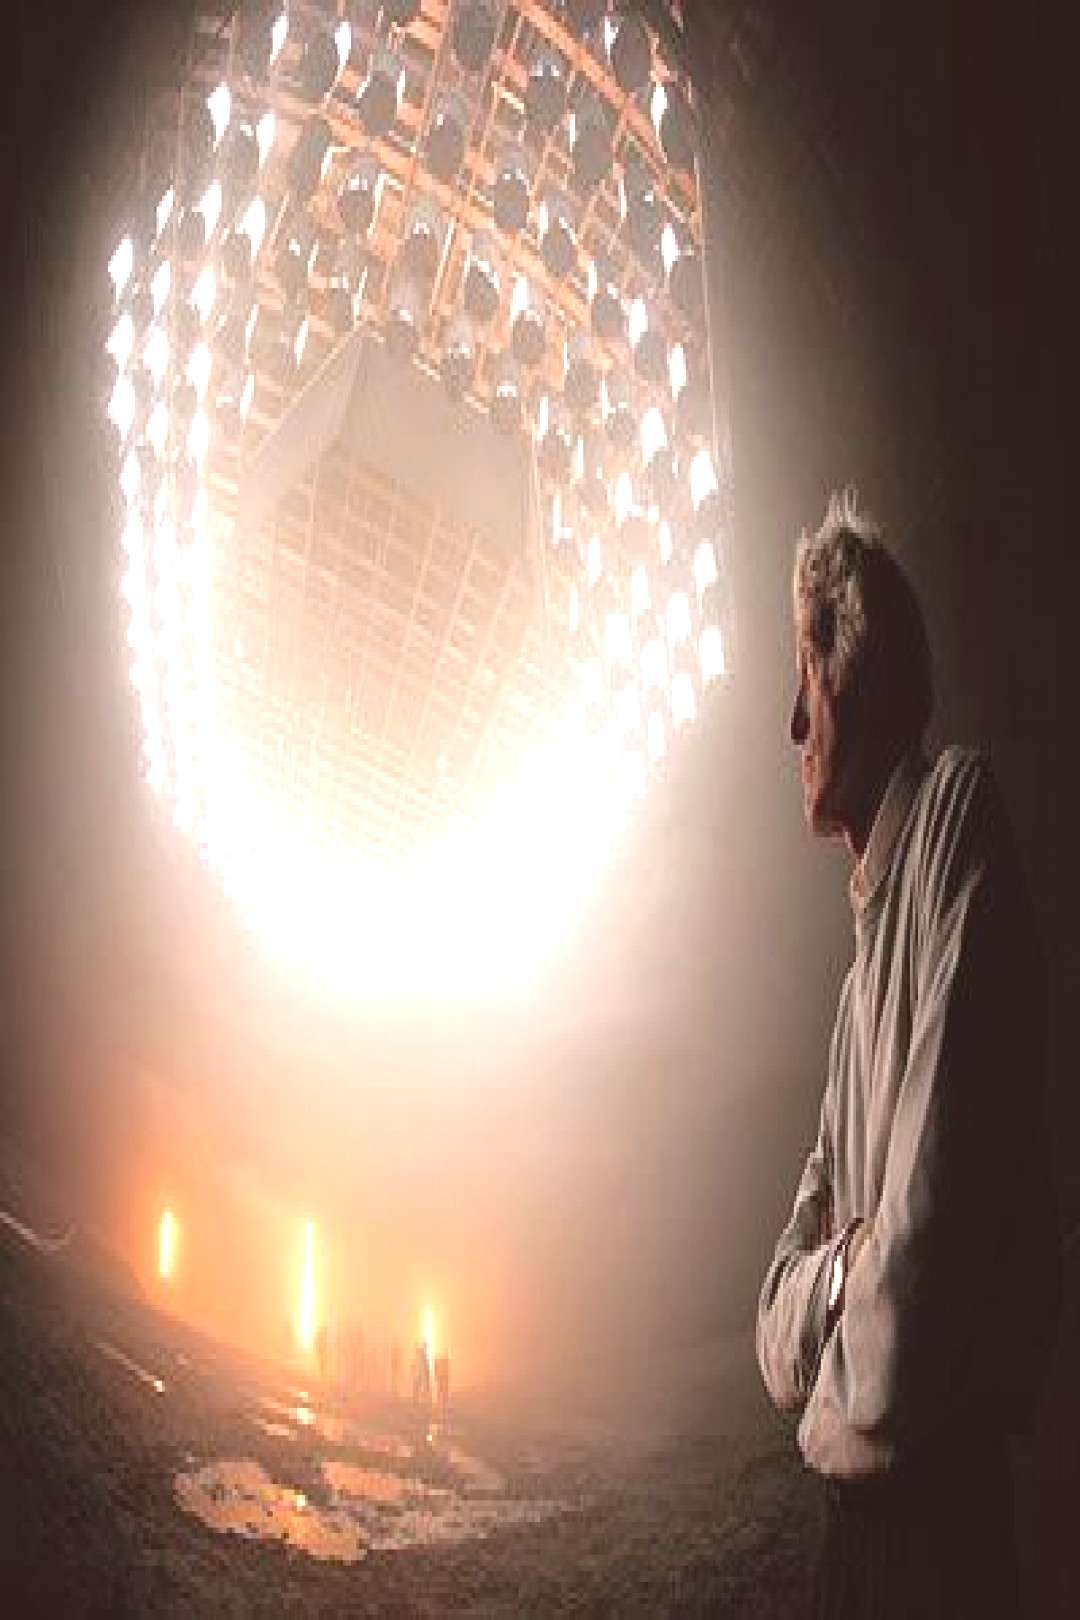 Deakins stands beneath an overhead grid of space lights in Stage 12 at Universal, where he and the